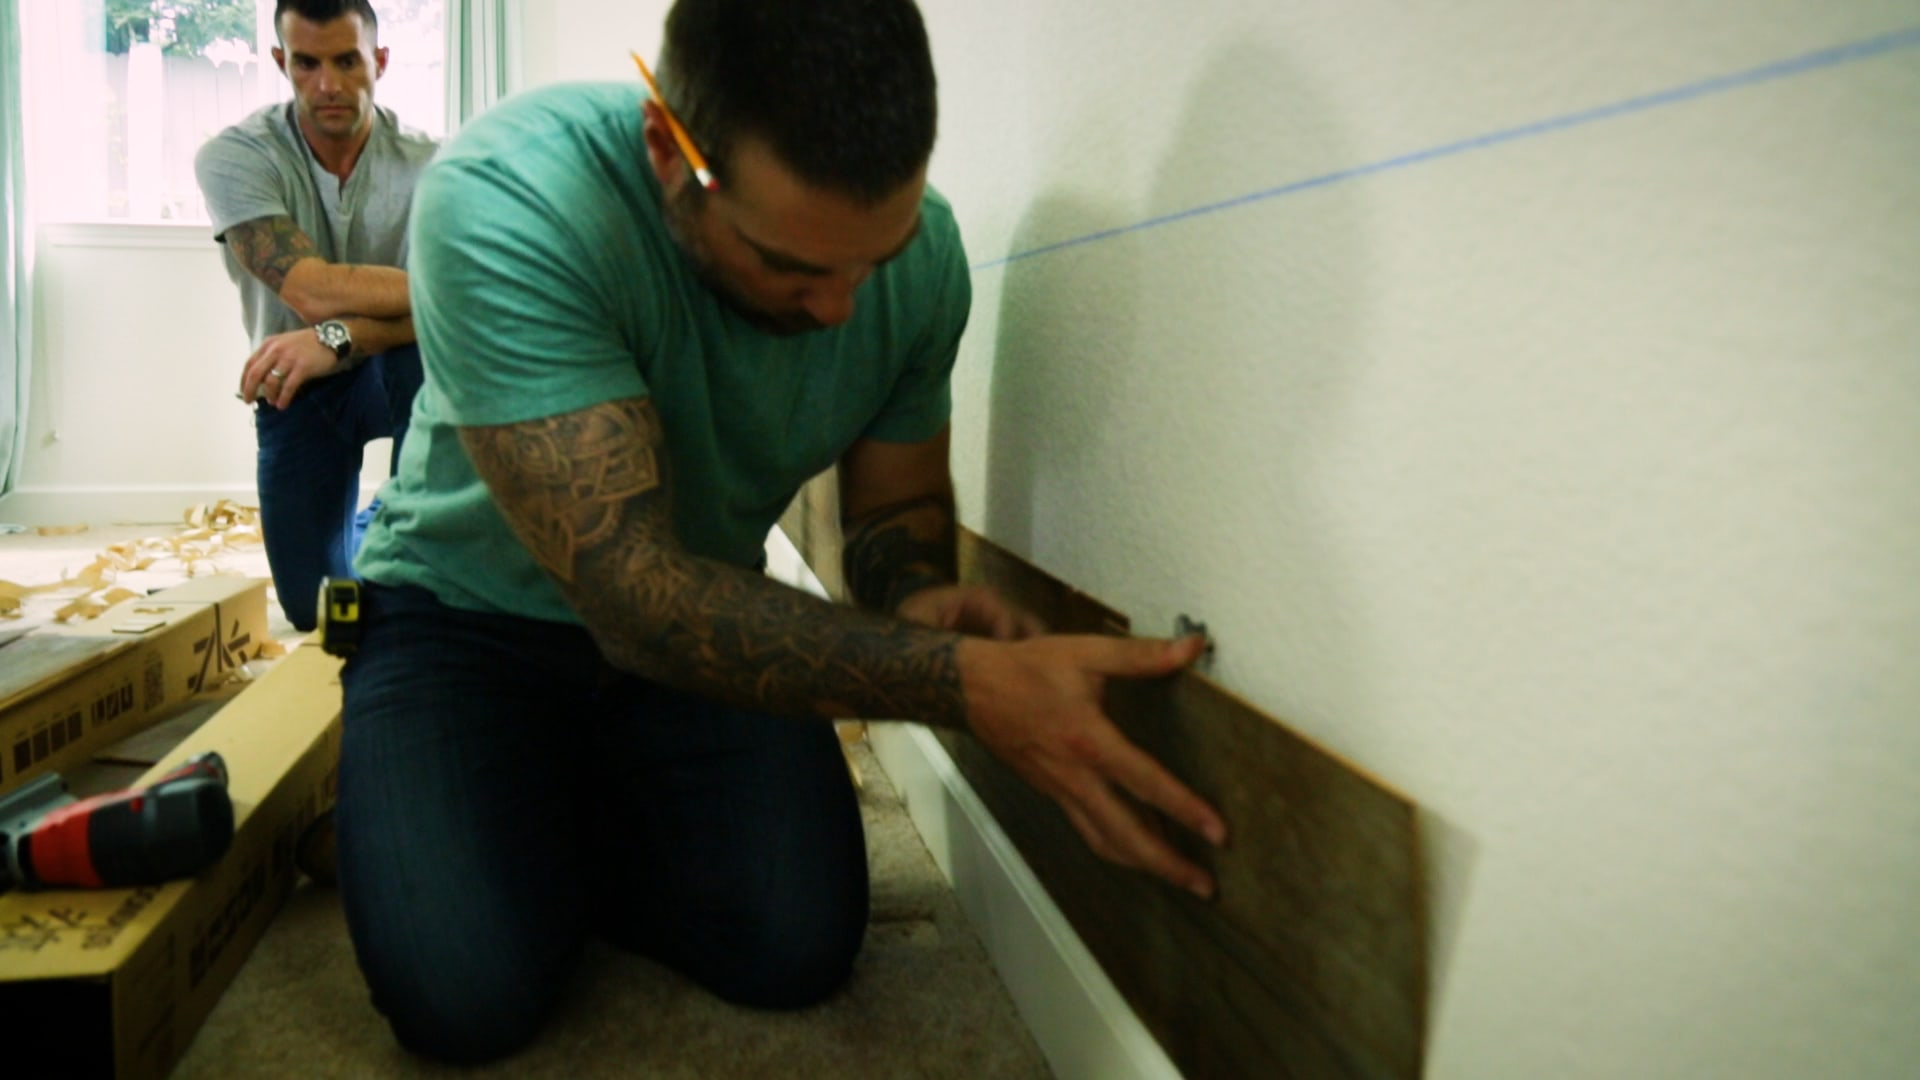 The cousins demonstrating how to install peel and stick wood wall planks in a master bedroom.